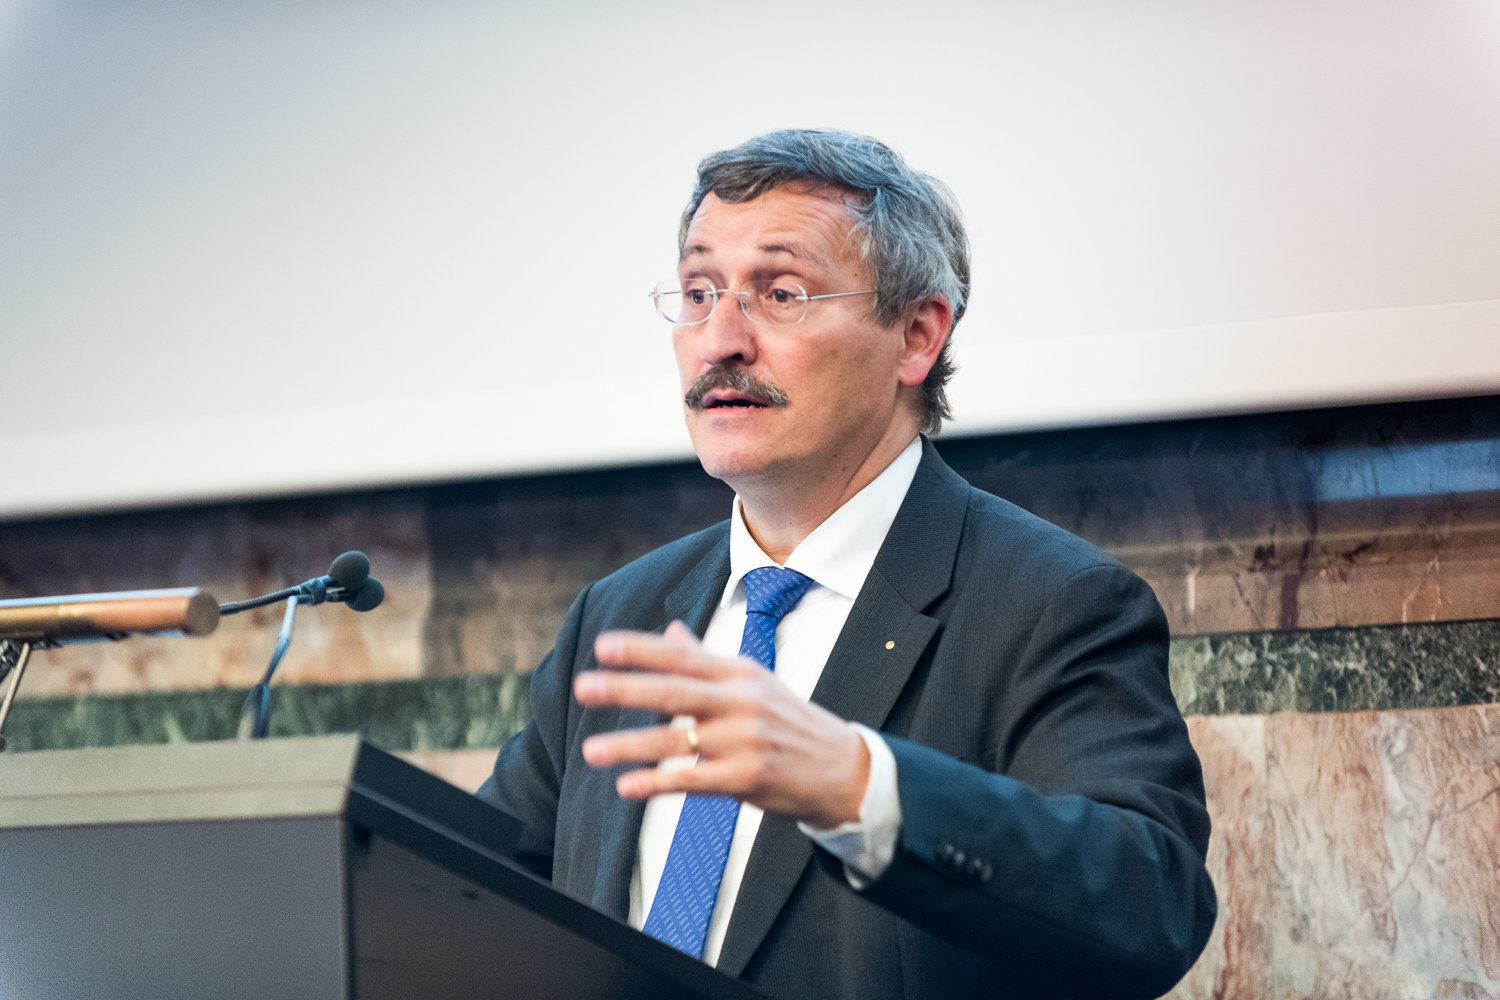 <p>&ldquo;Digitalization is changing the world, and that includes university teaching,&rdquo; says President Michael Hengartner. (Image: Frank Br&uuml;derli)</p>